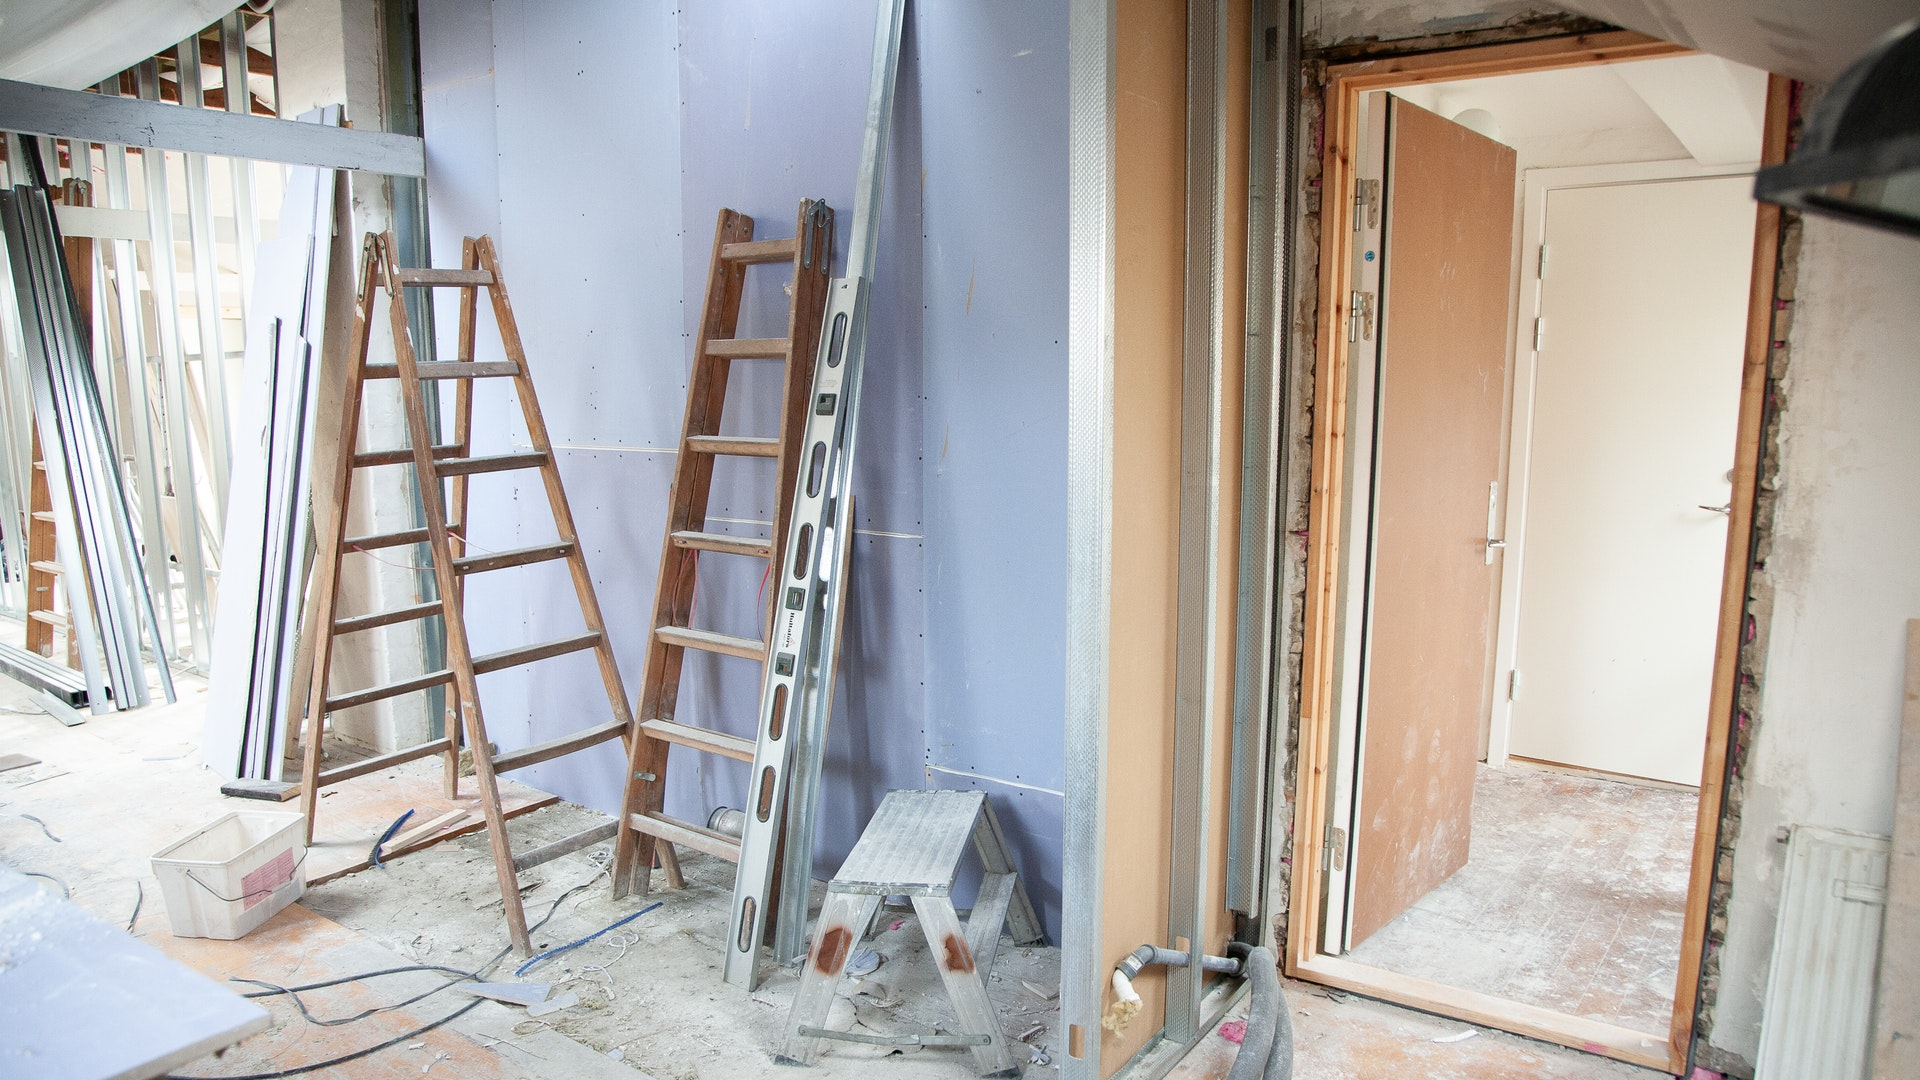 An empty room with two ladders one standing and the other leaning against the wall there are paint buckets and other construction materials littred throughout the room. the walls ahve been stripped of it's paint and it is clear that a home improvement project is underway.